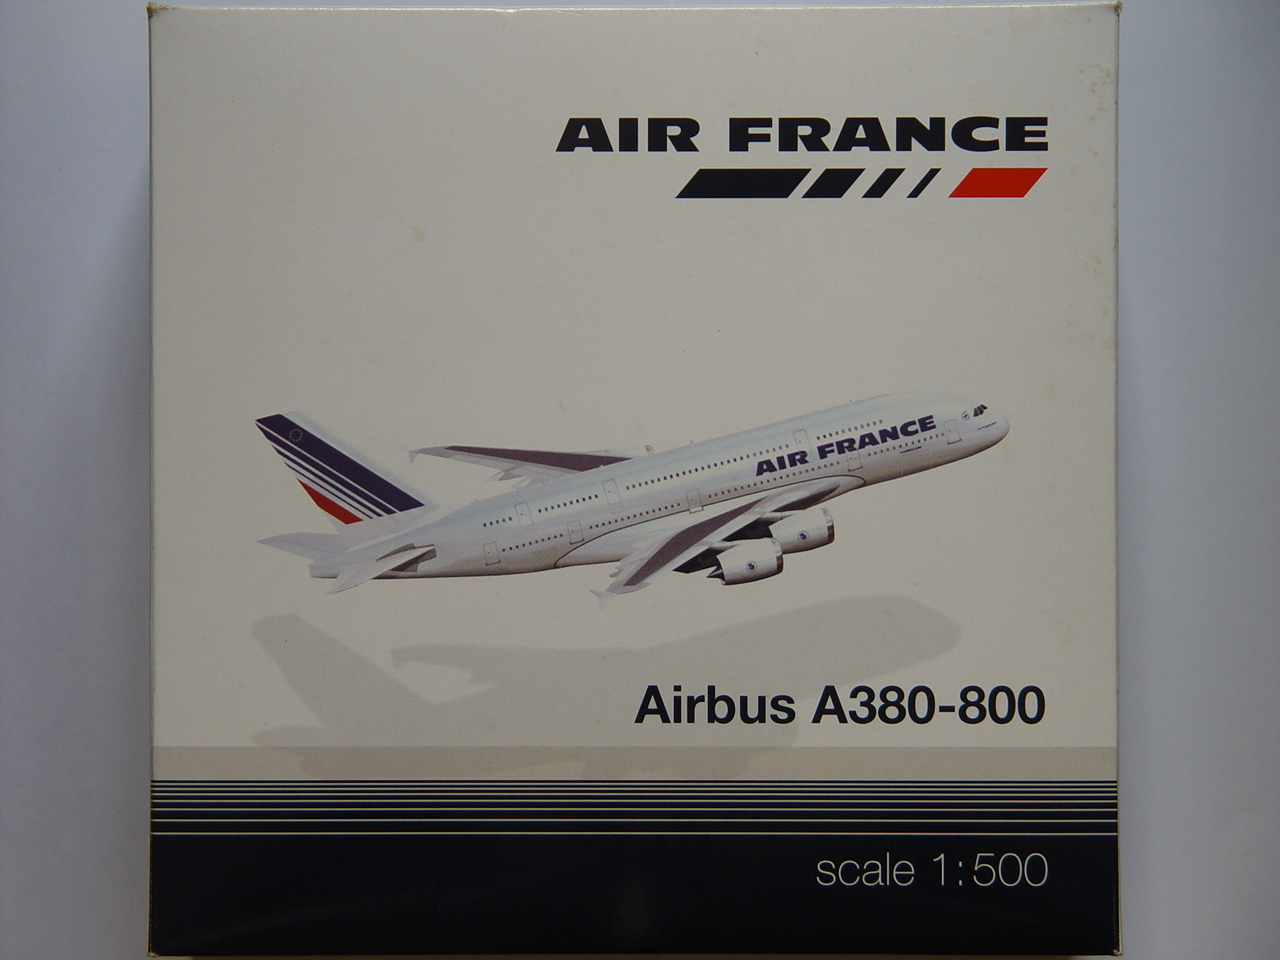 FOR SALE: Air France Airbus A380-800 Aircraft Model